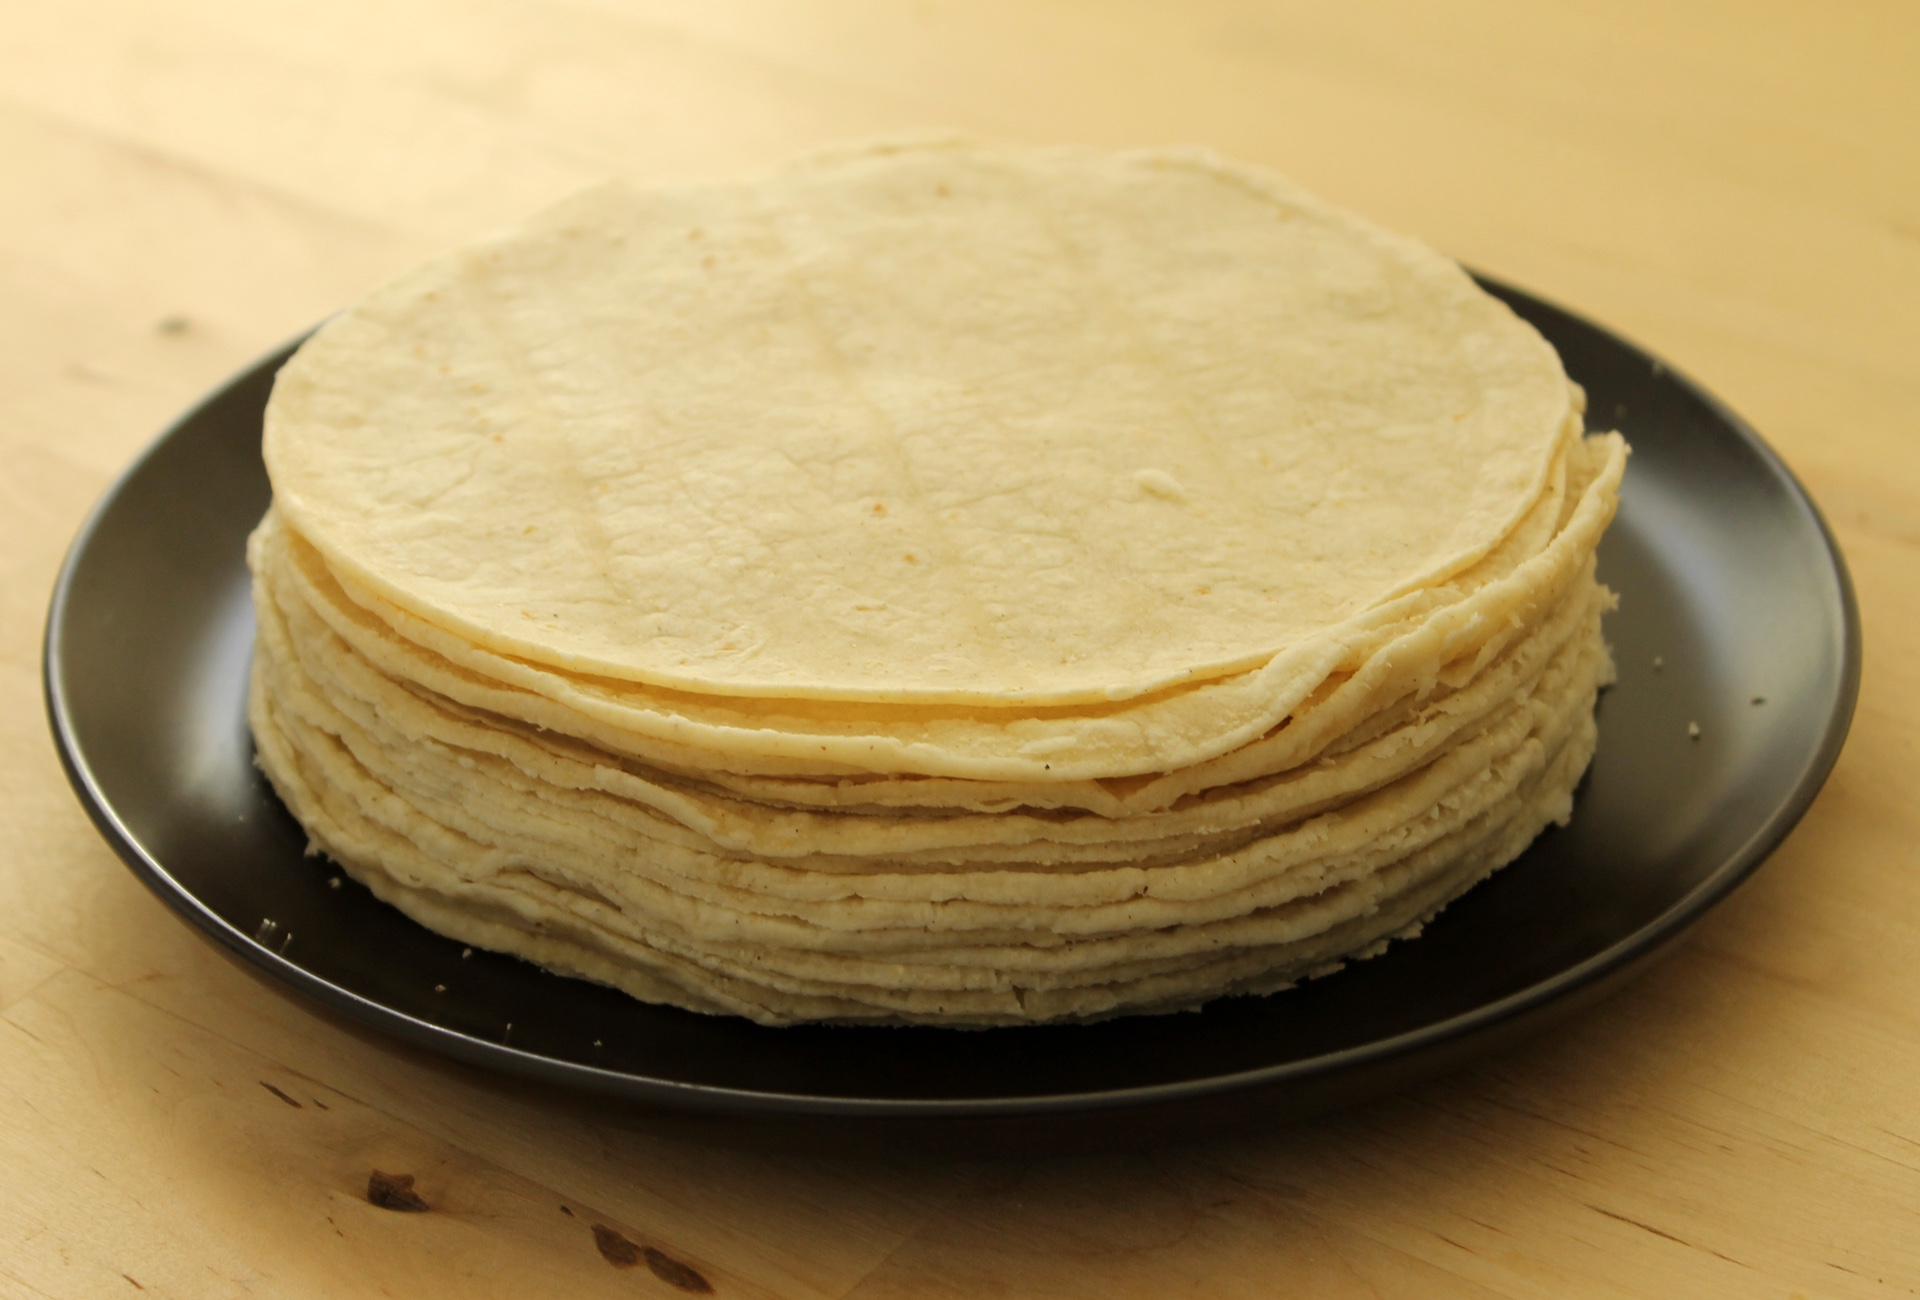 Mi Pueblo's tortillas are made in house and sold hot.